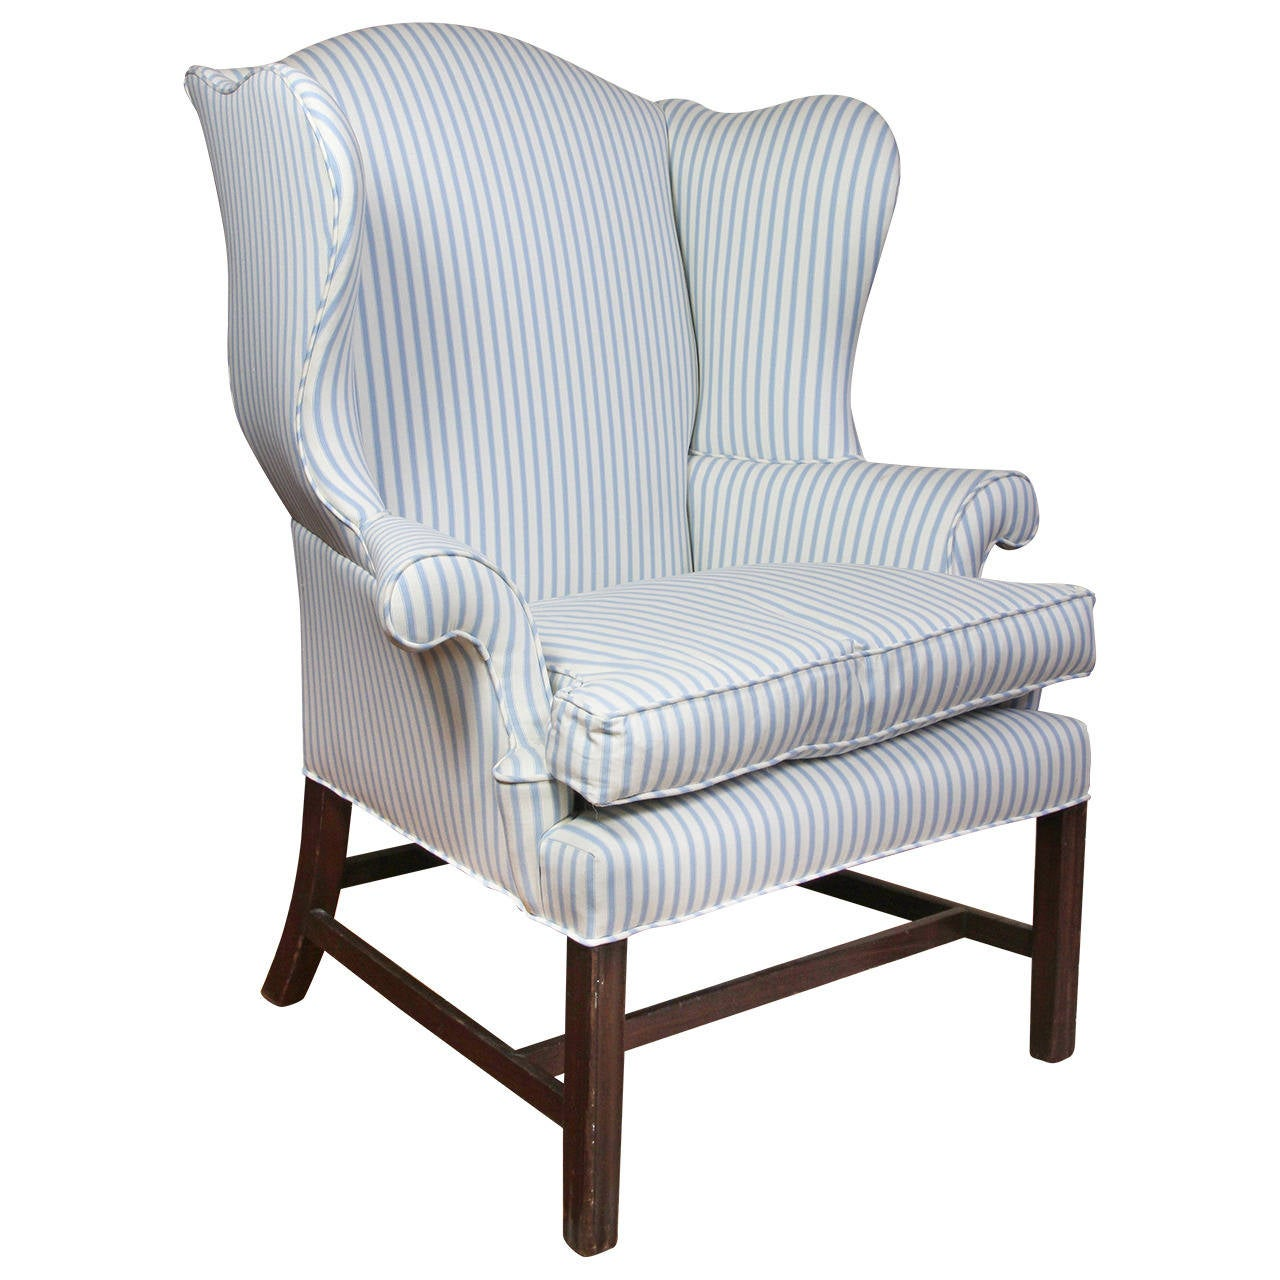 american chippendale mahogany wing chair 1